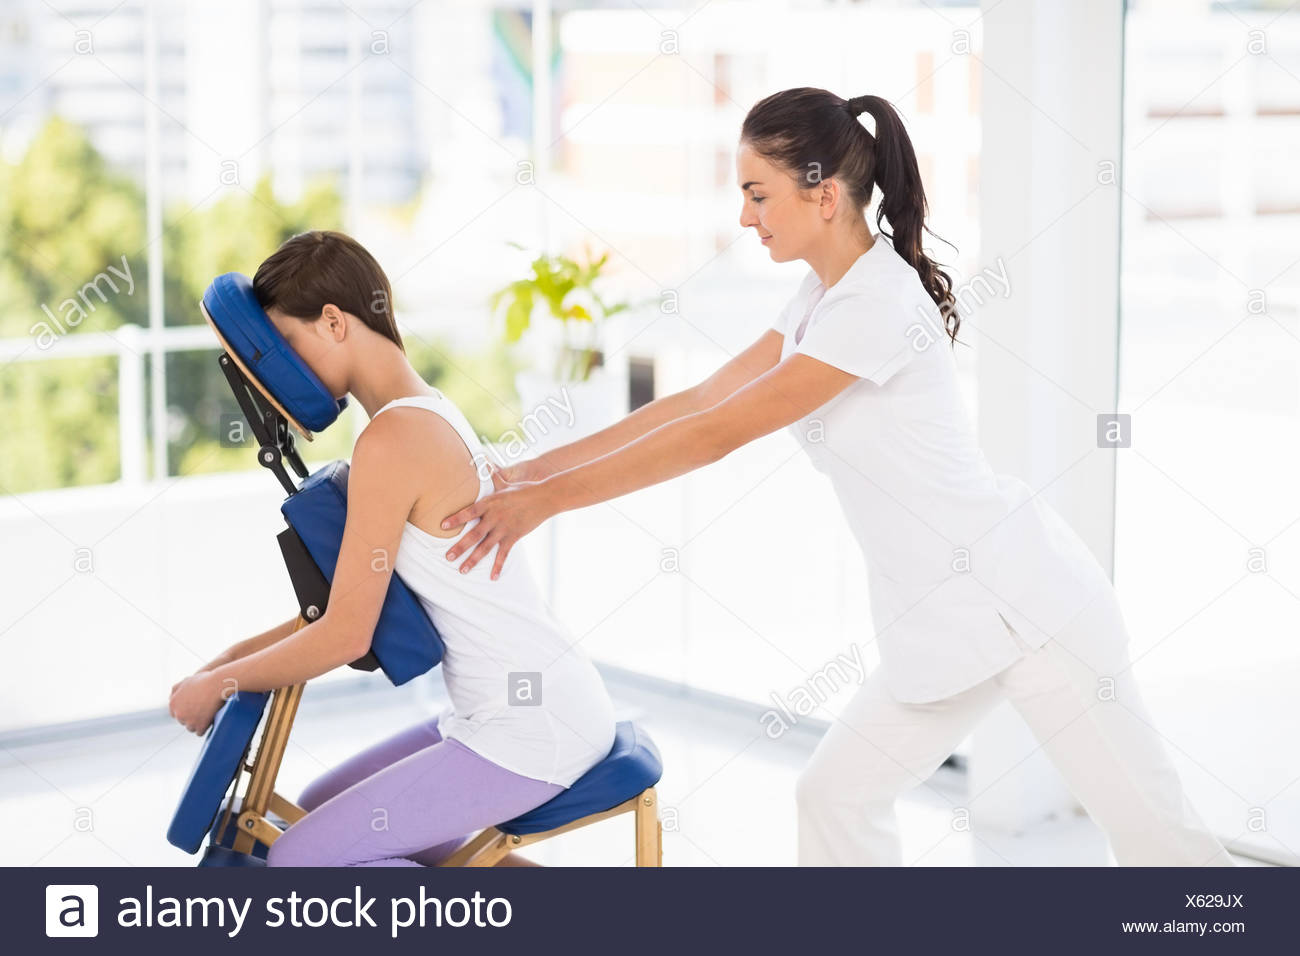 Woman being massaged on chair by masseuse Stock Photo